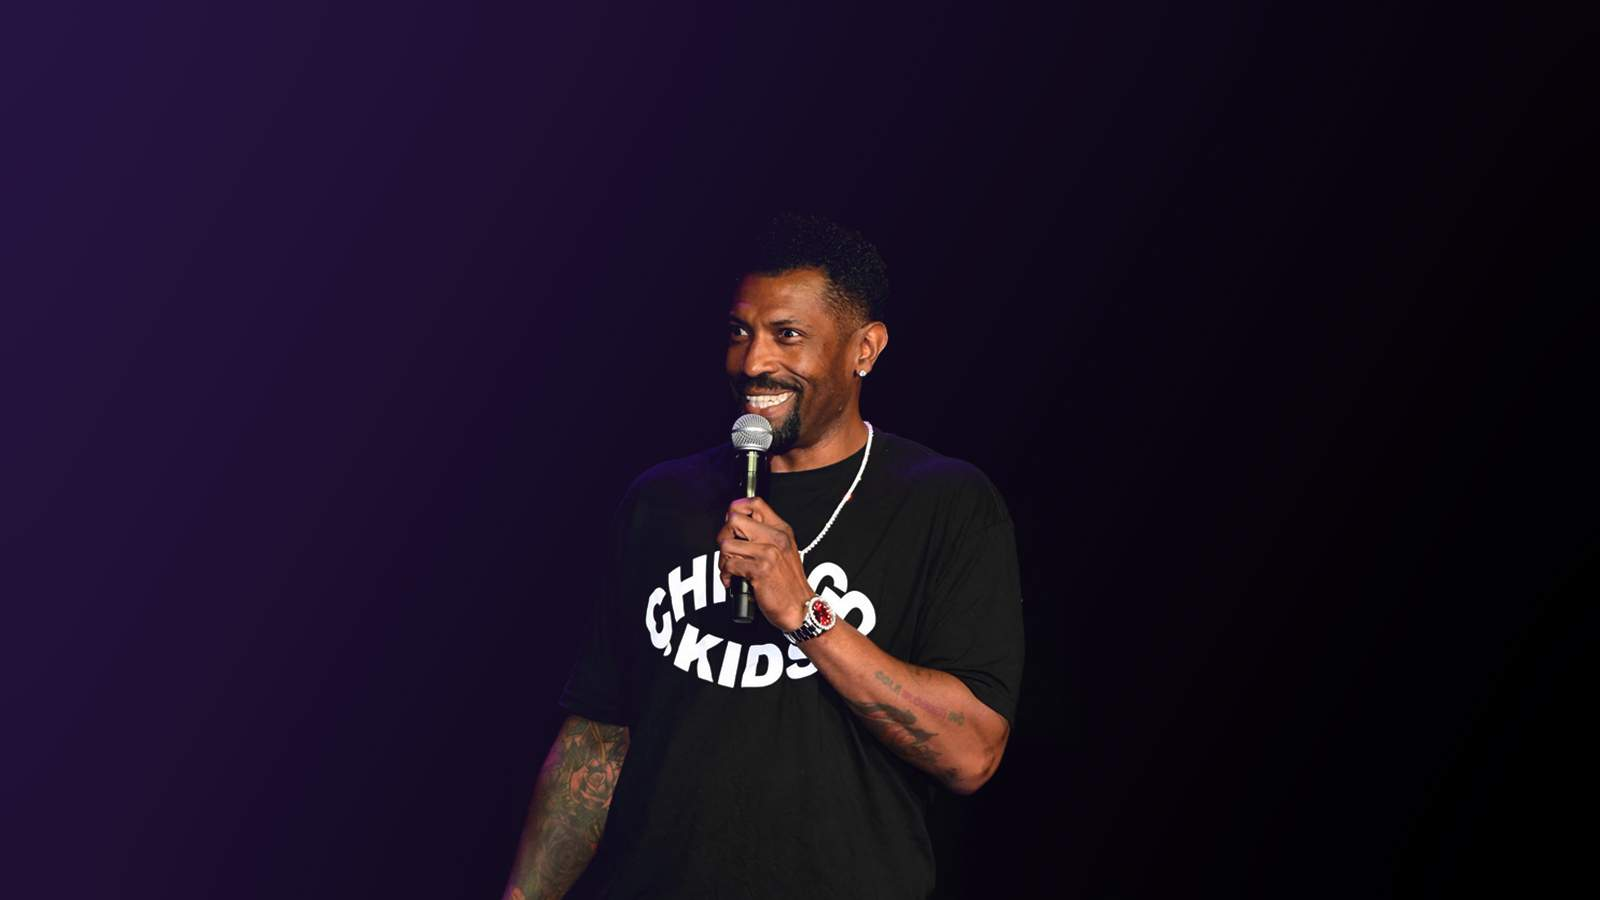 Deon Cole (Rescheduled from 4/17/2020, 9/5/2020)